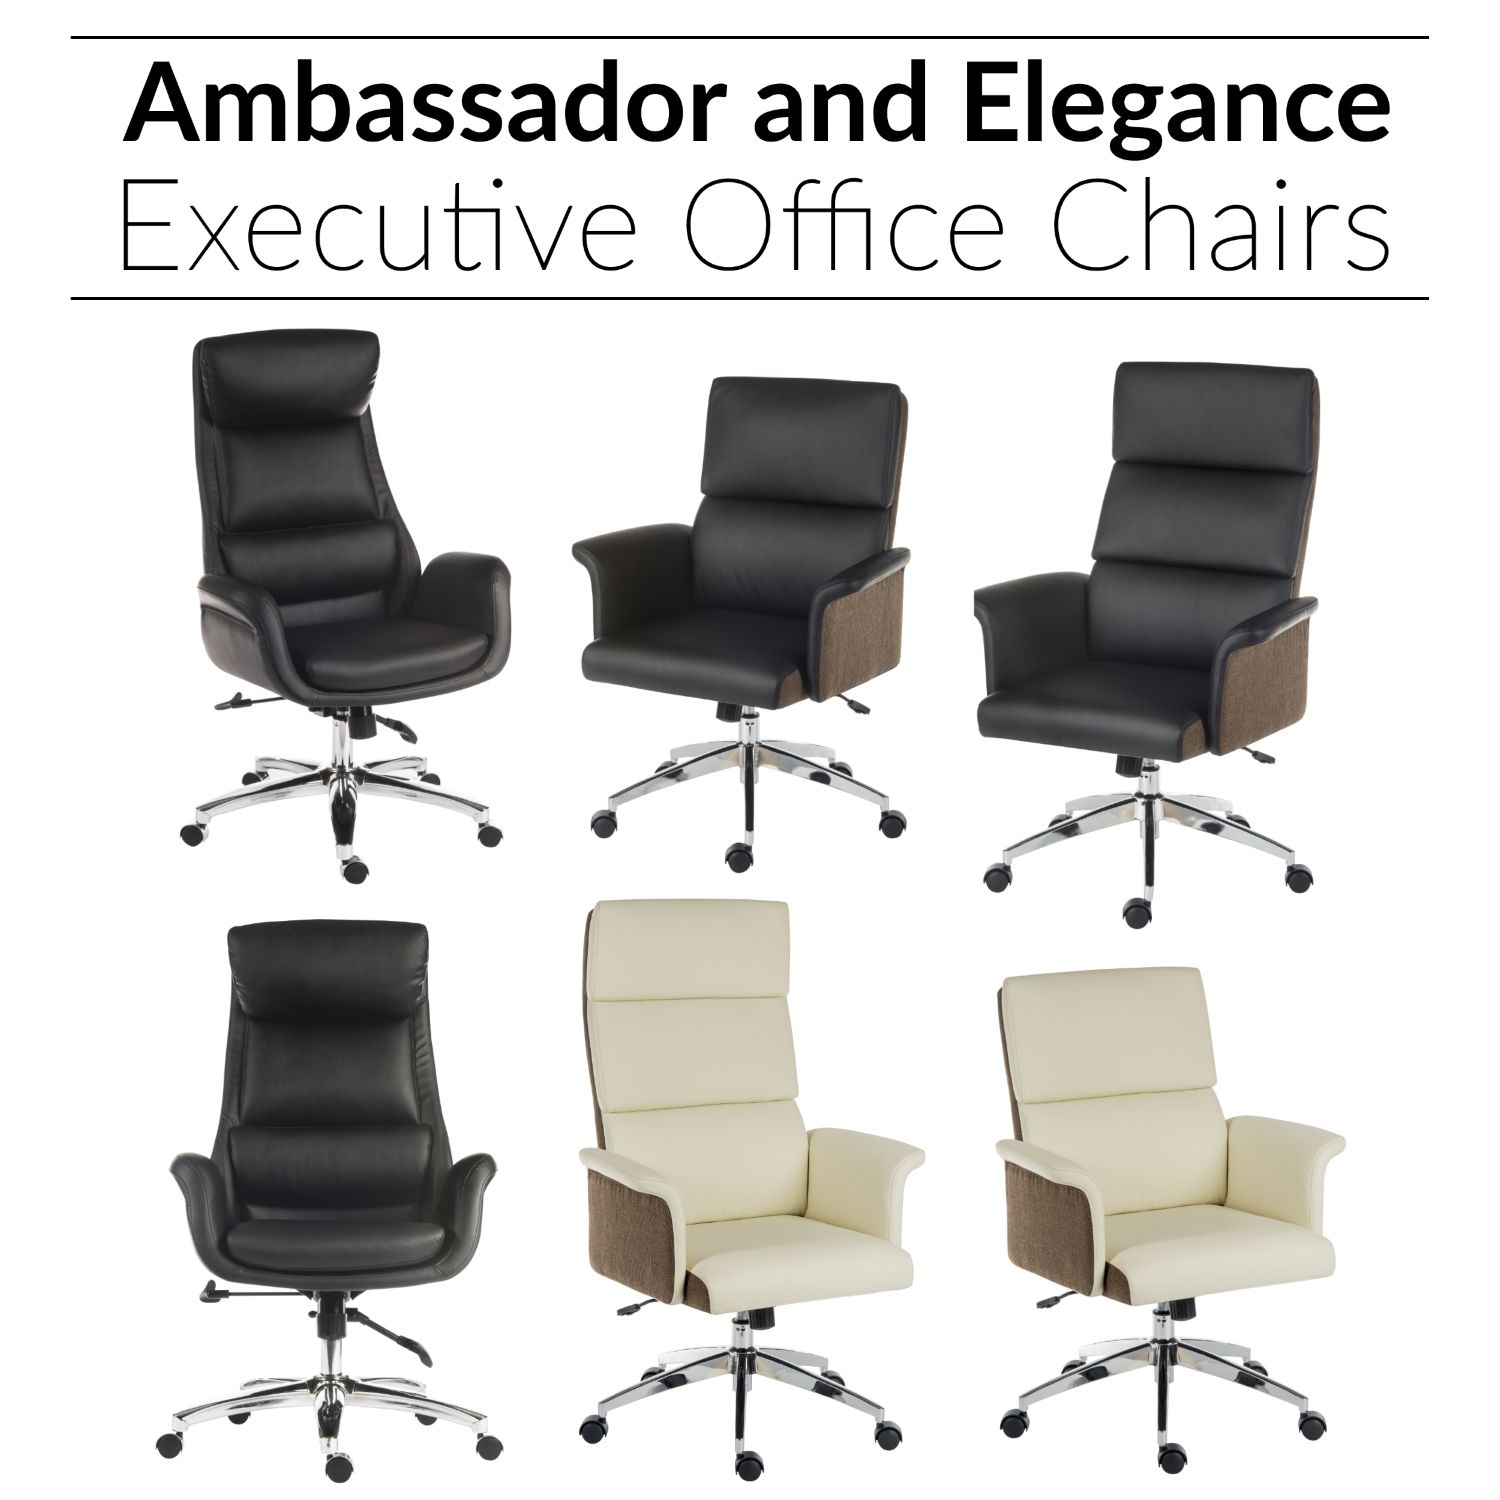 Ambassador and Elegance Executive Office Chairs (With